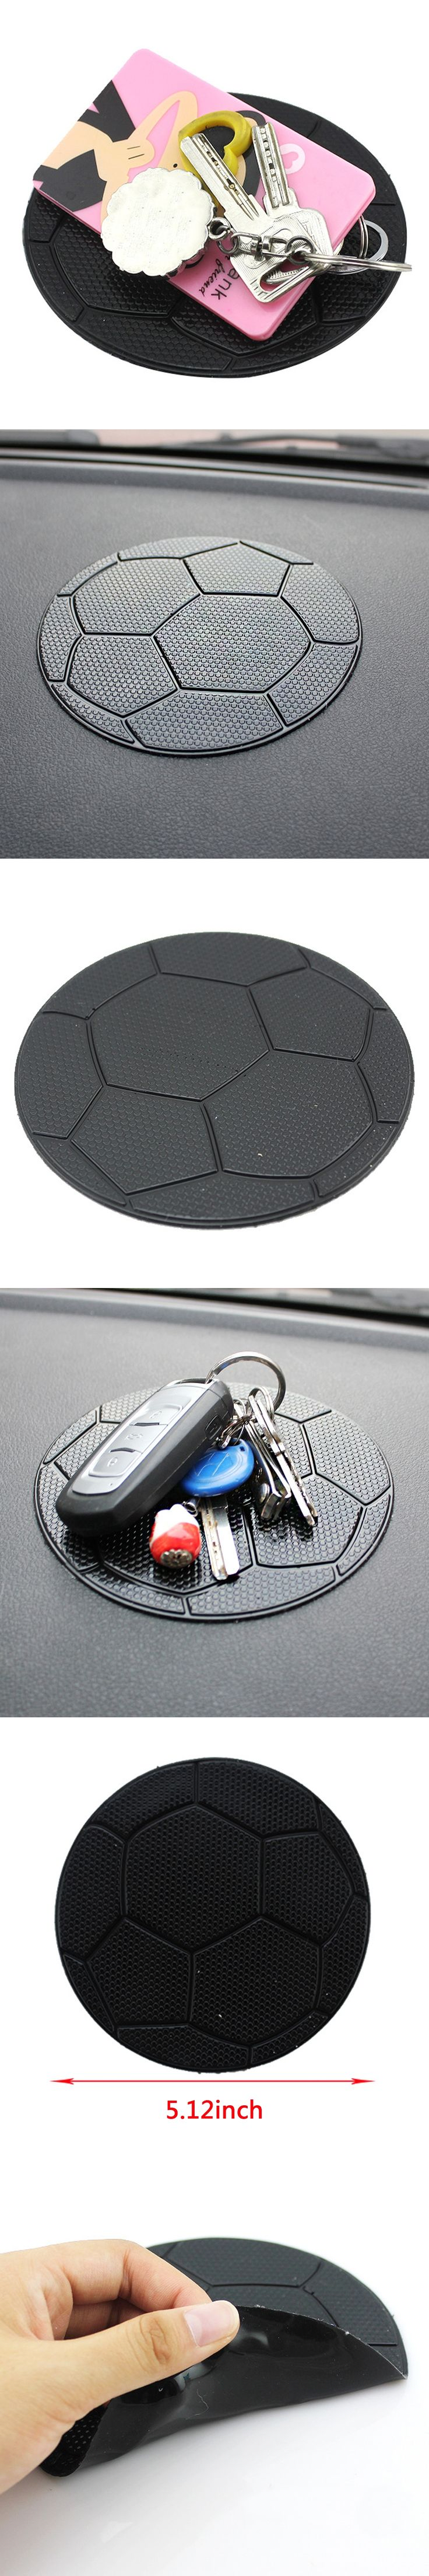 Dewtreetali 1pc Interior Car Football Anti-Slip Dashboard Sticky For Pad Non-slip Mat Holder GPS Cell Phone Key Holder